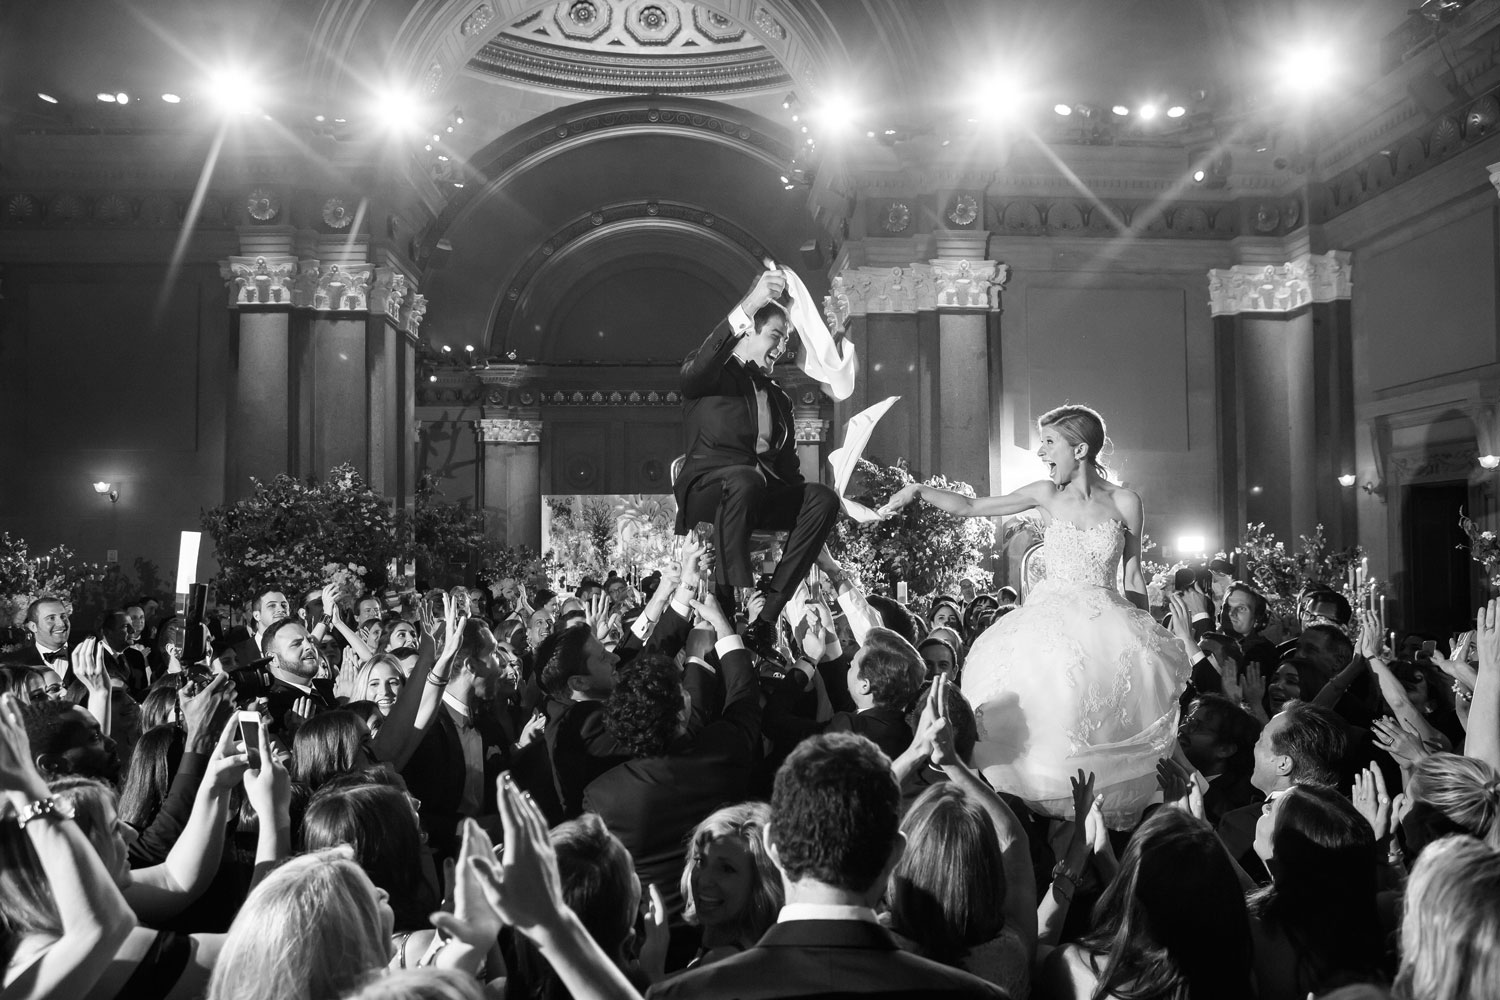 black and white photo of wedding reception guests lifting bride groom in air hora dance